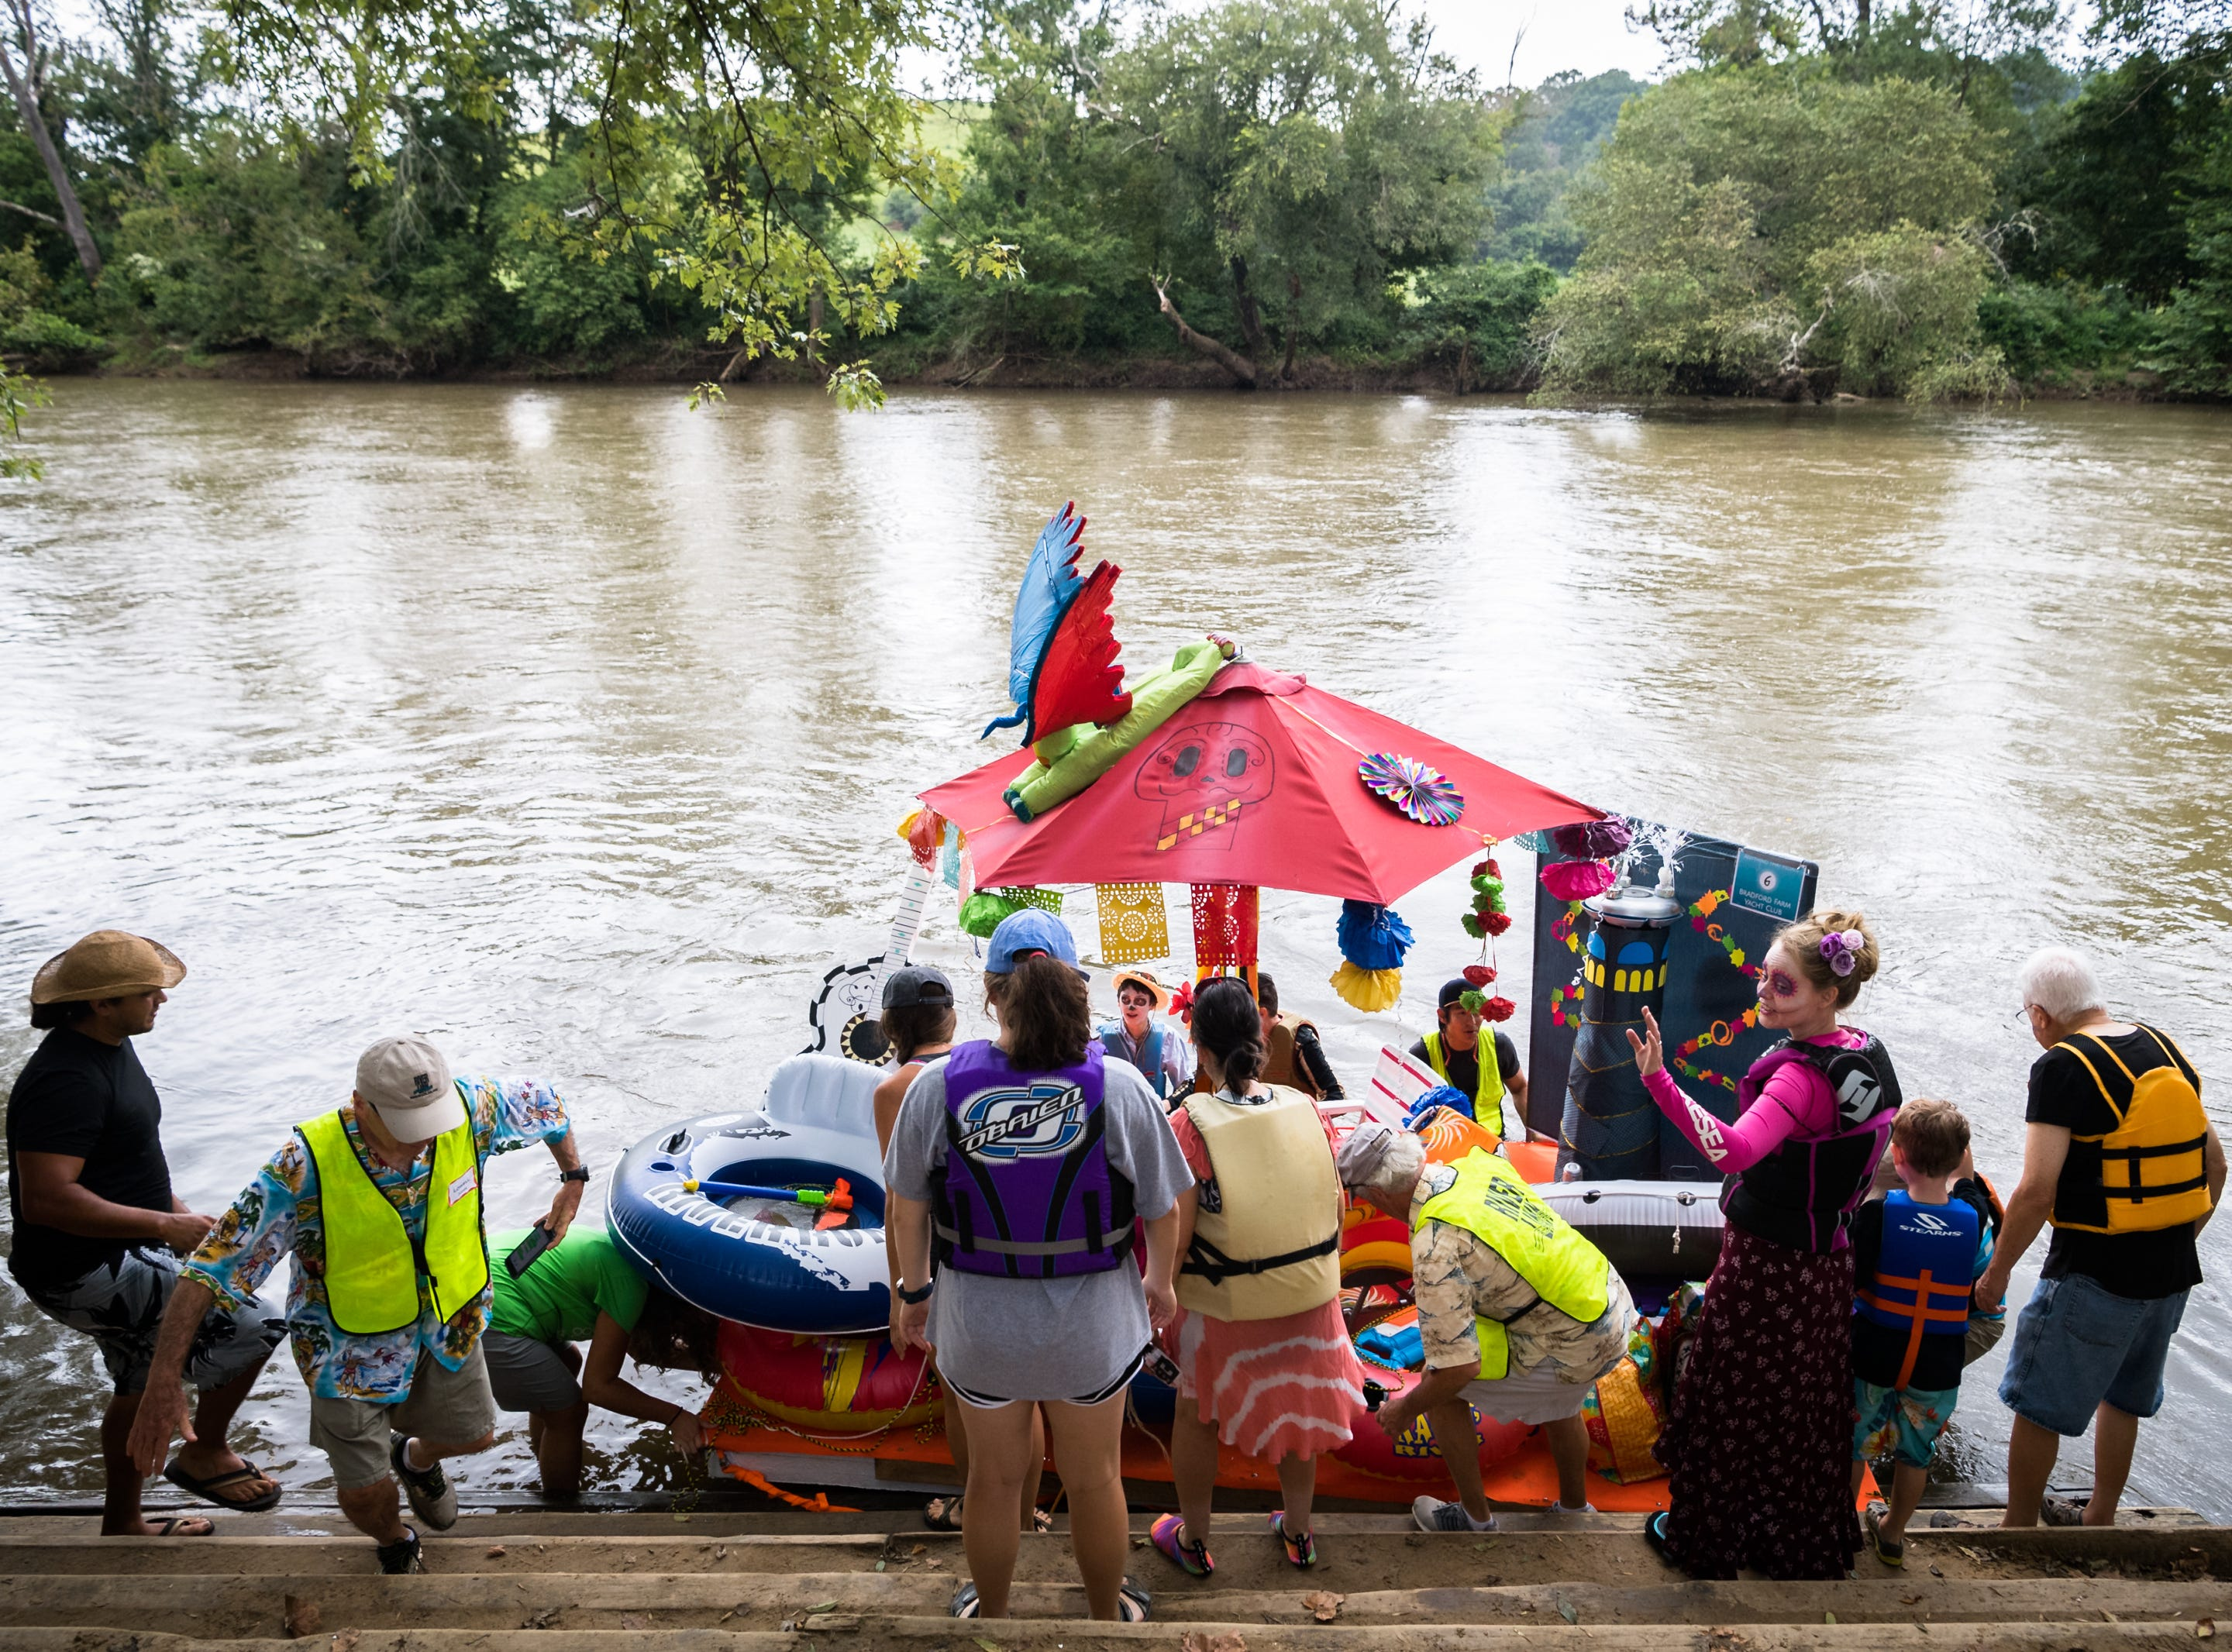 The Bradford Farm Yacht Club Anything that Floats parade team prepares to float down to New Belgium Brewing where RiverLink's RiverFest took place Saturday, August 18, 2018.